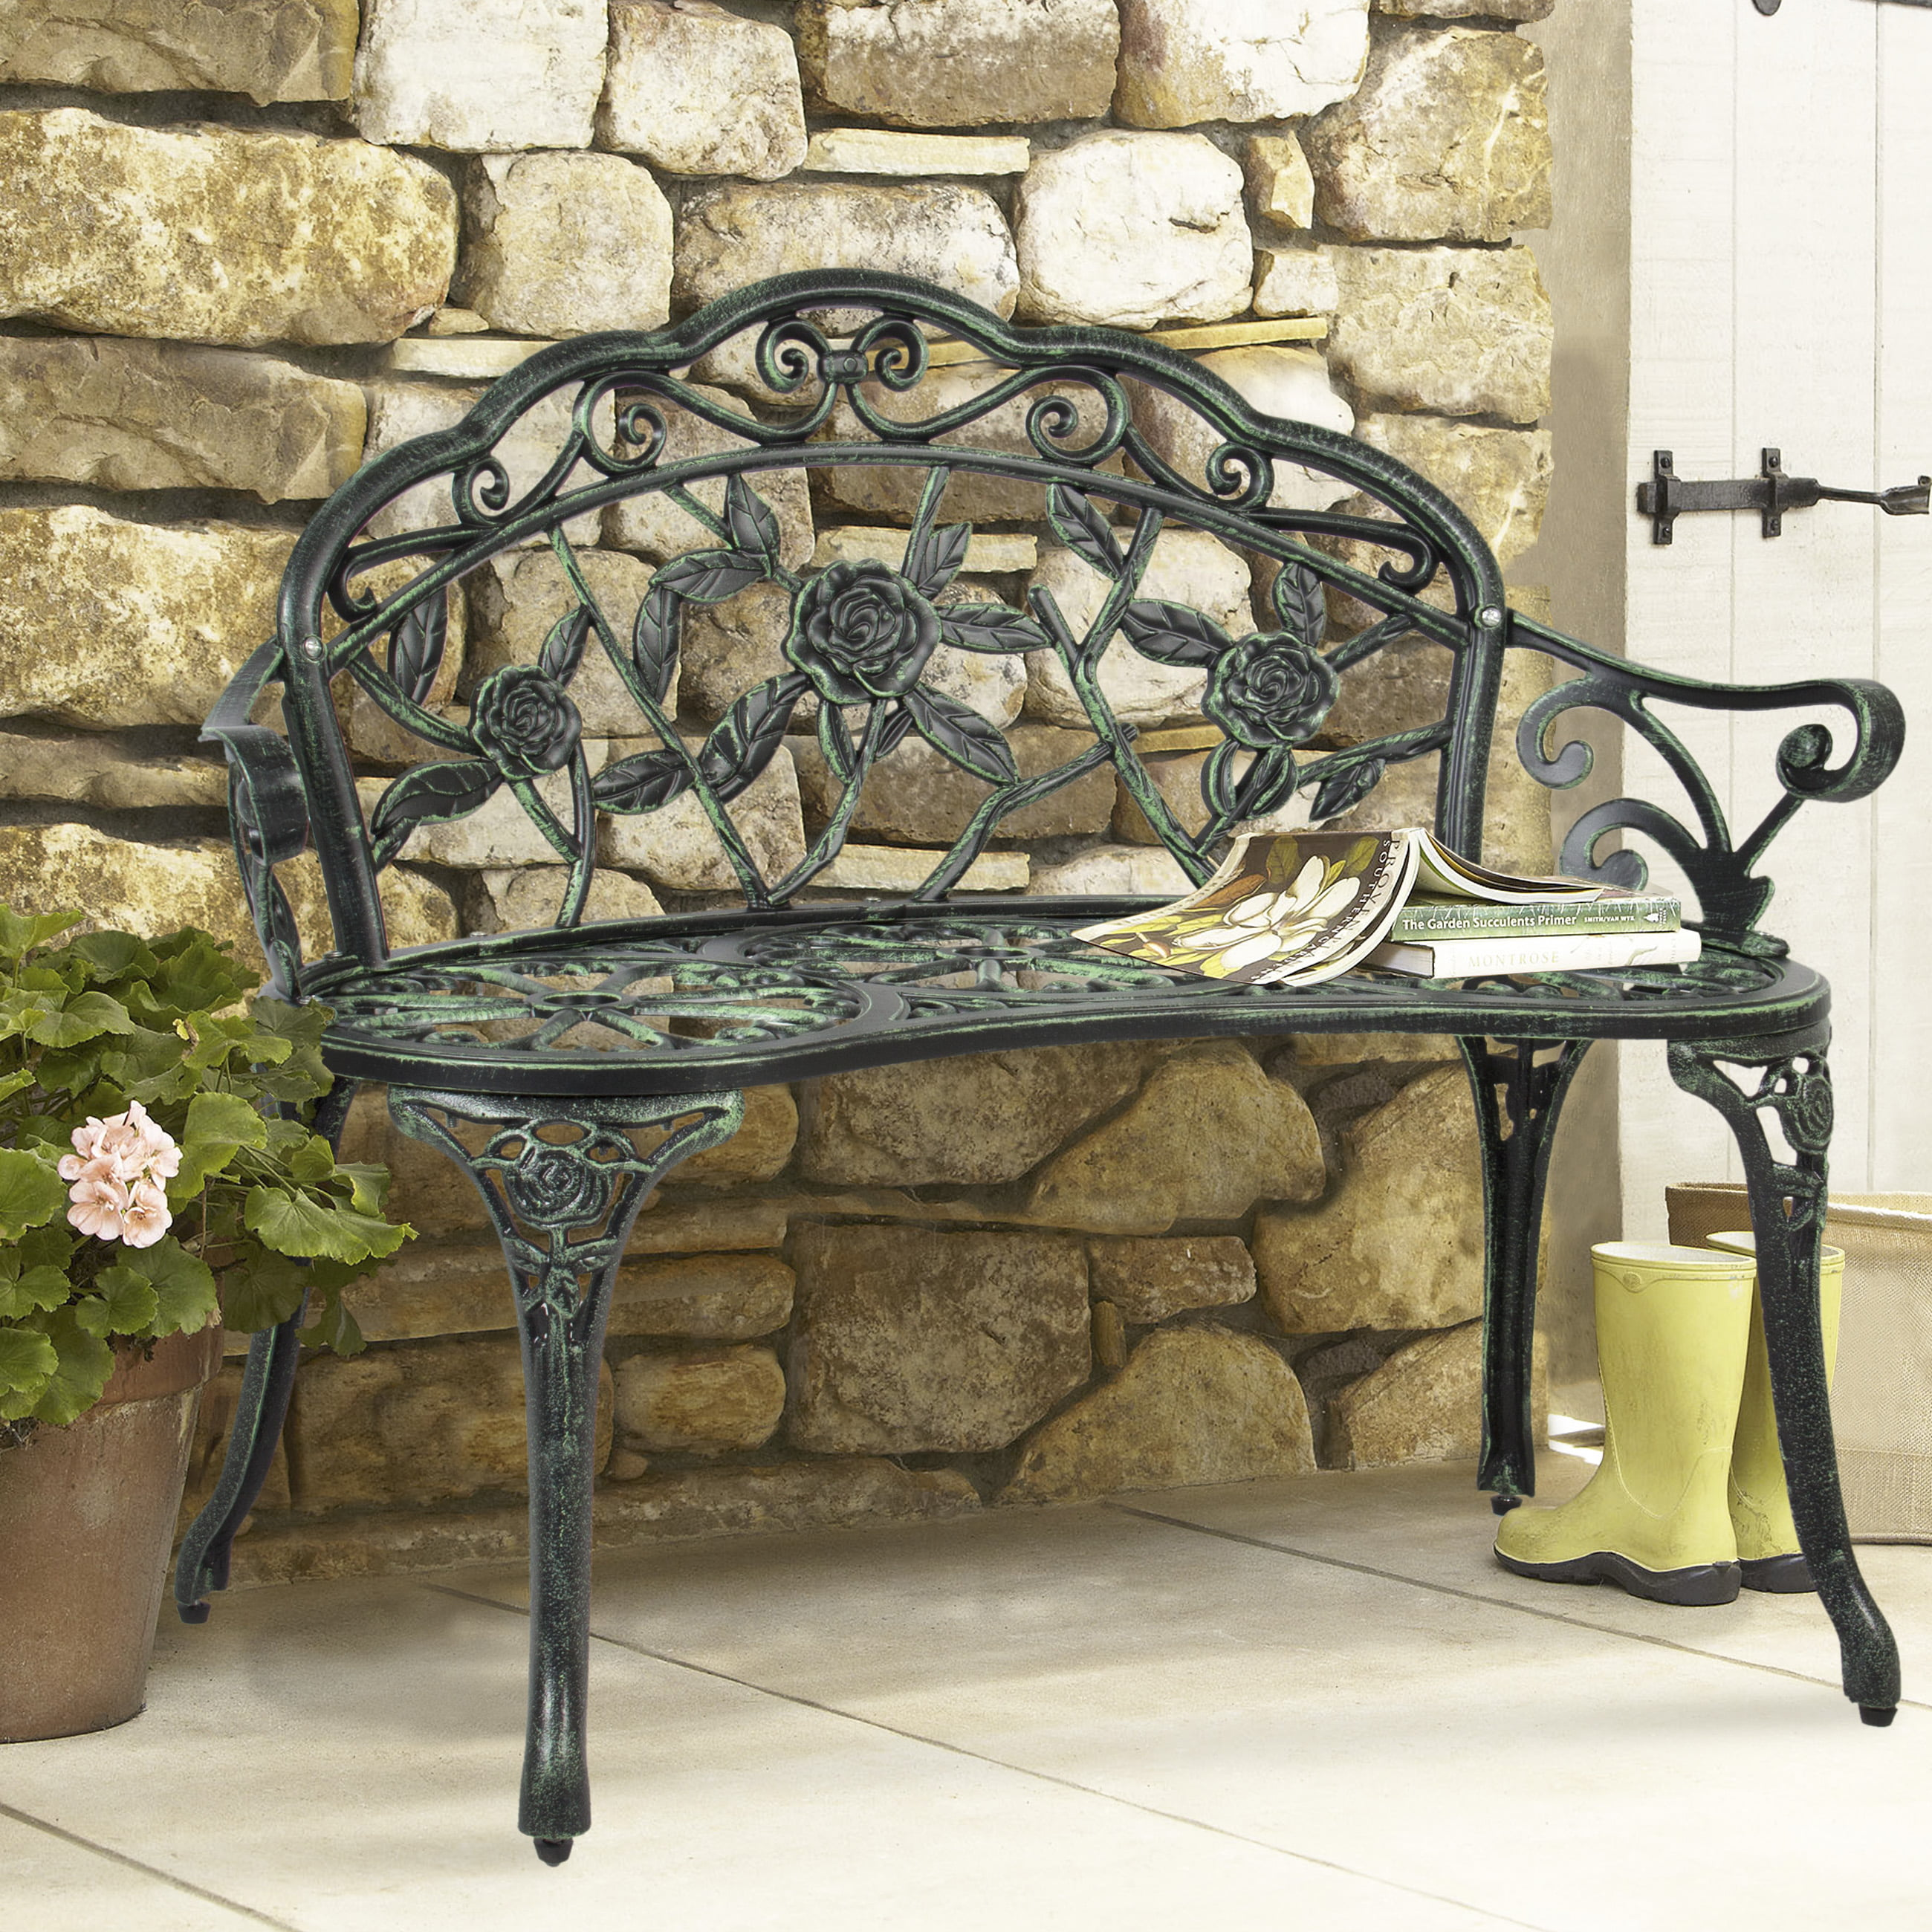 gray barn outdoor metal garden the overstock home shipping bluebird bench today free product